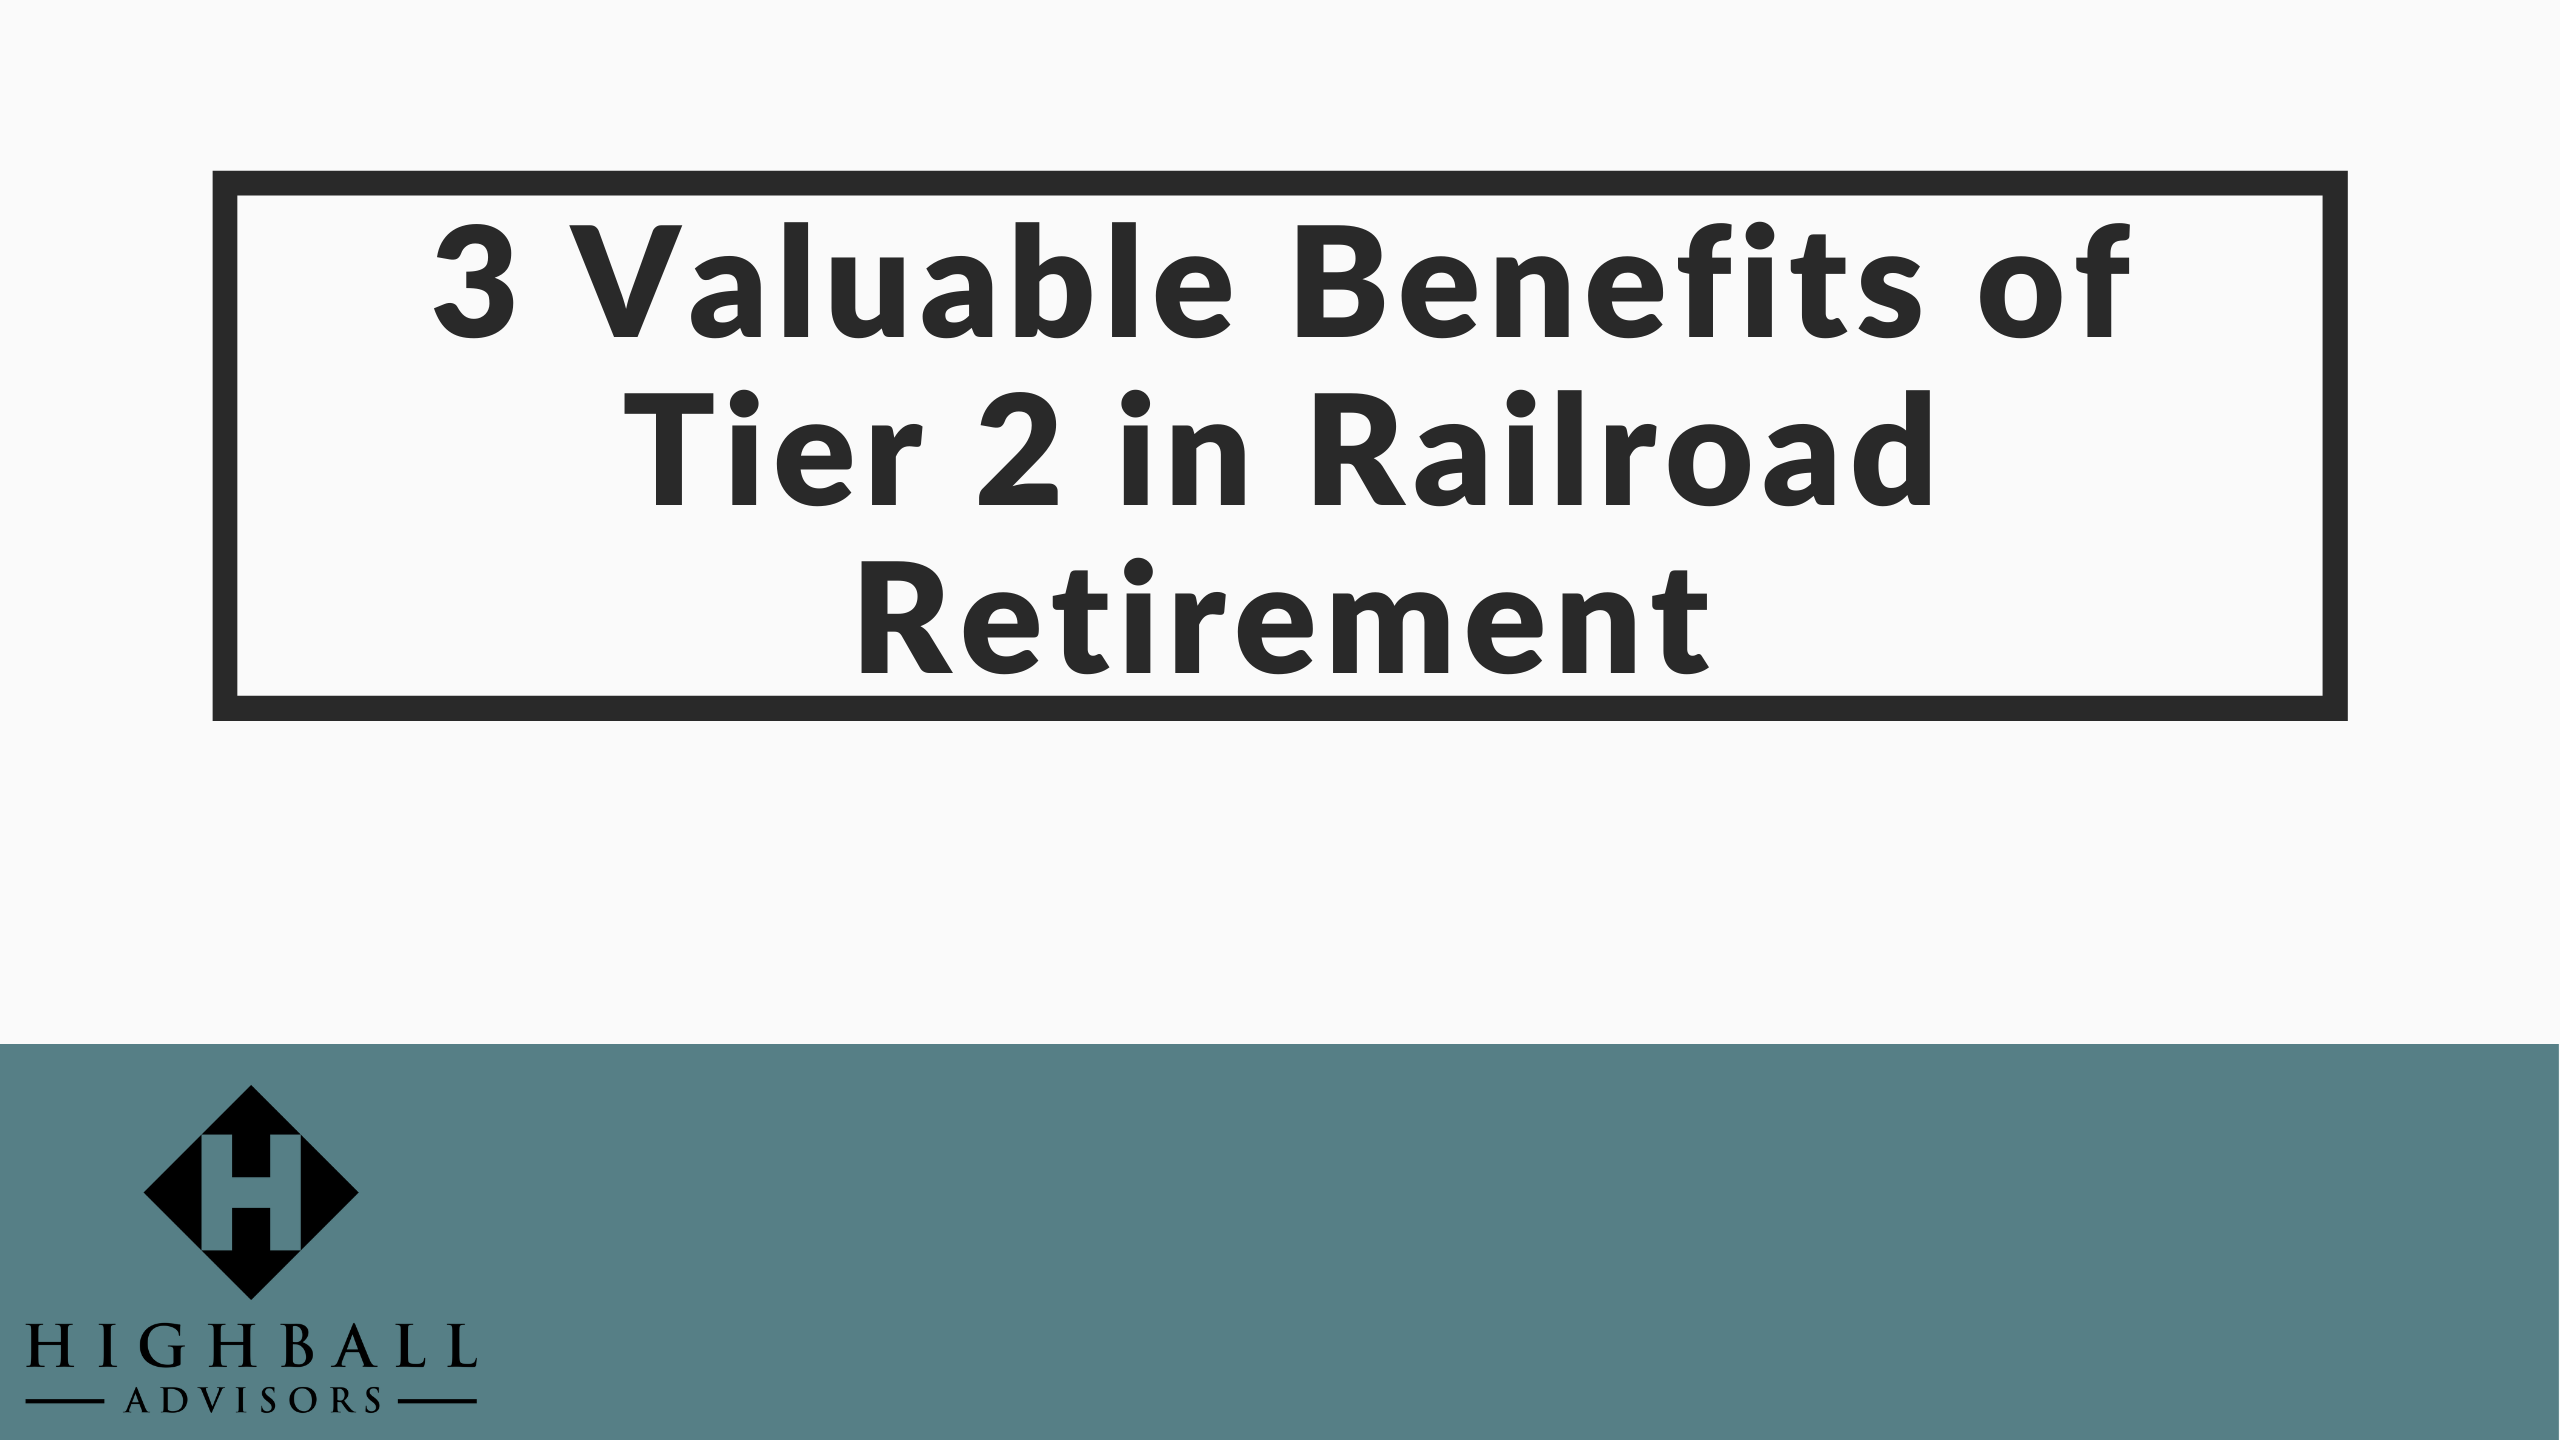 VIDEO: 3 Valuable Benefits of Tier 2 in Railroad Retirement Thumbnail